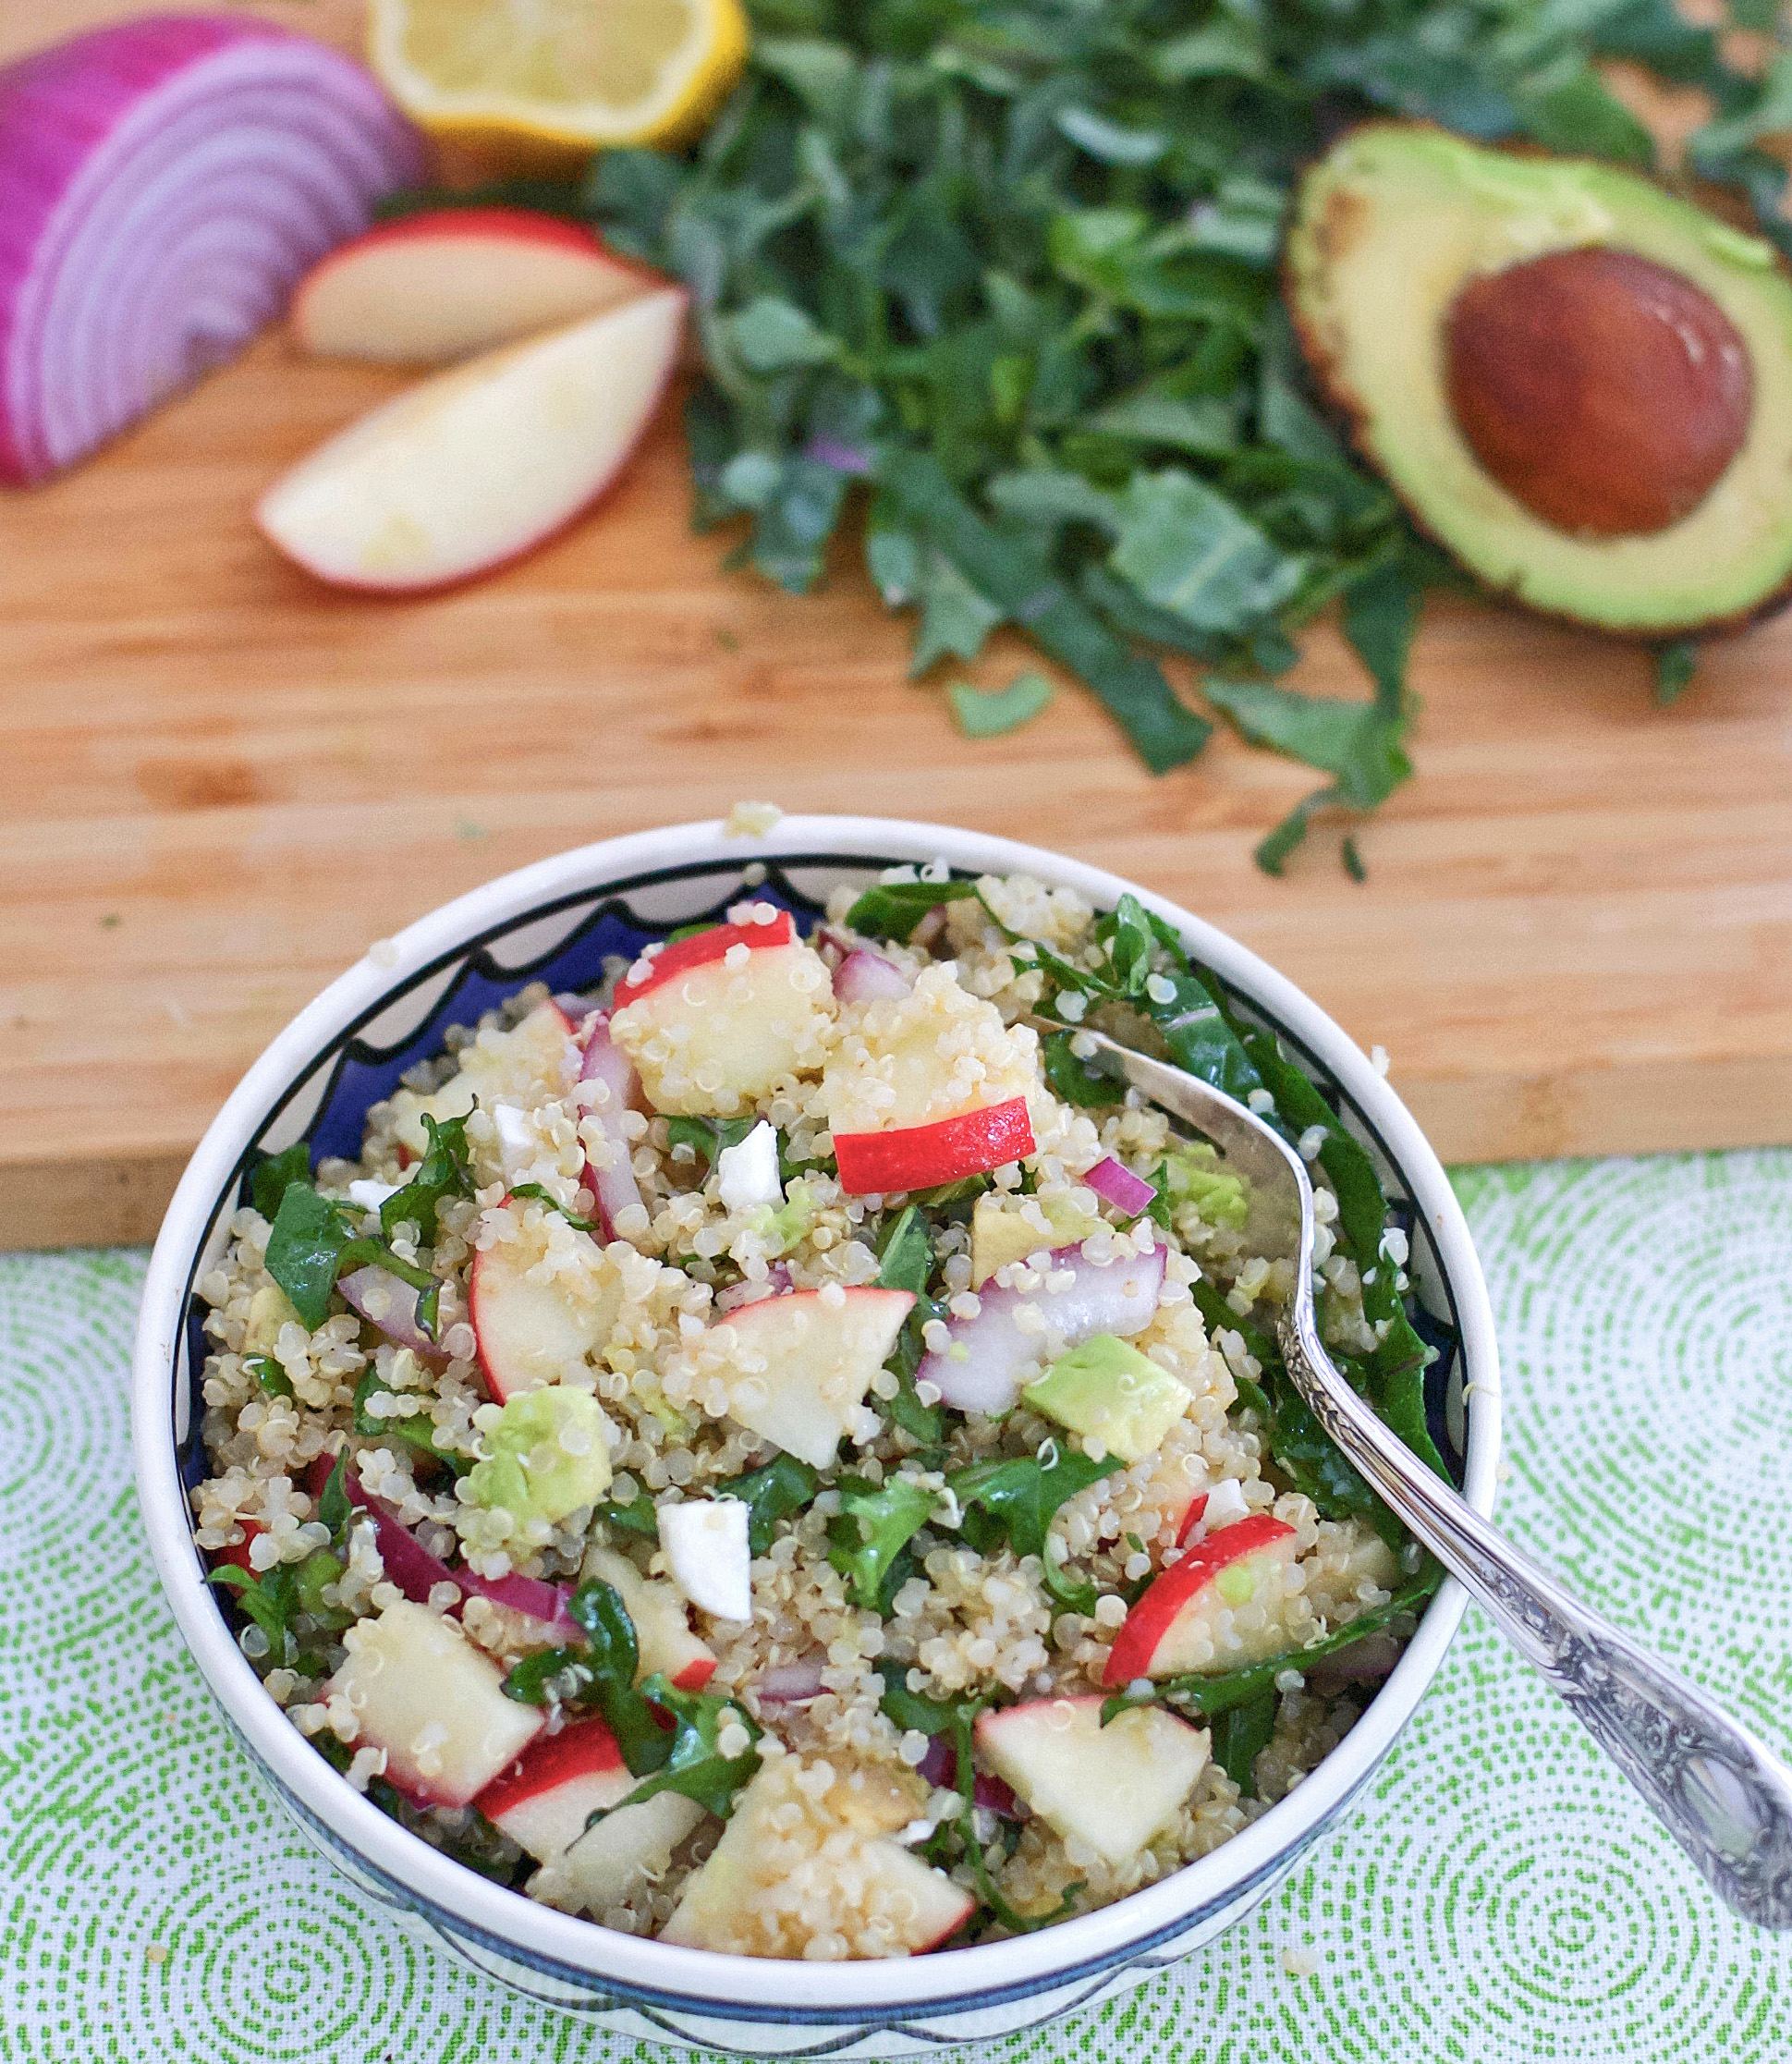 Apple Avocado Quinoa Salad Recipe